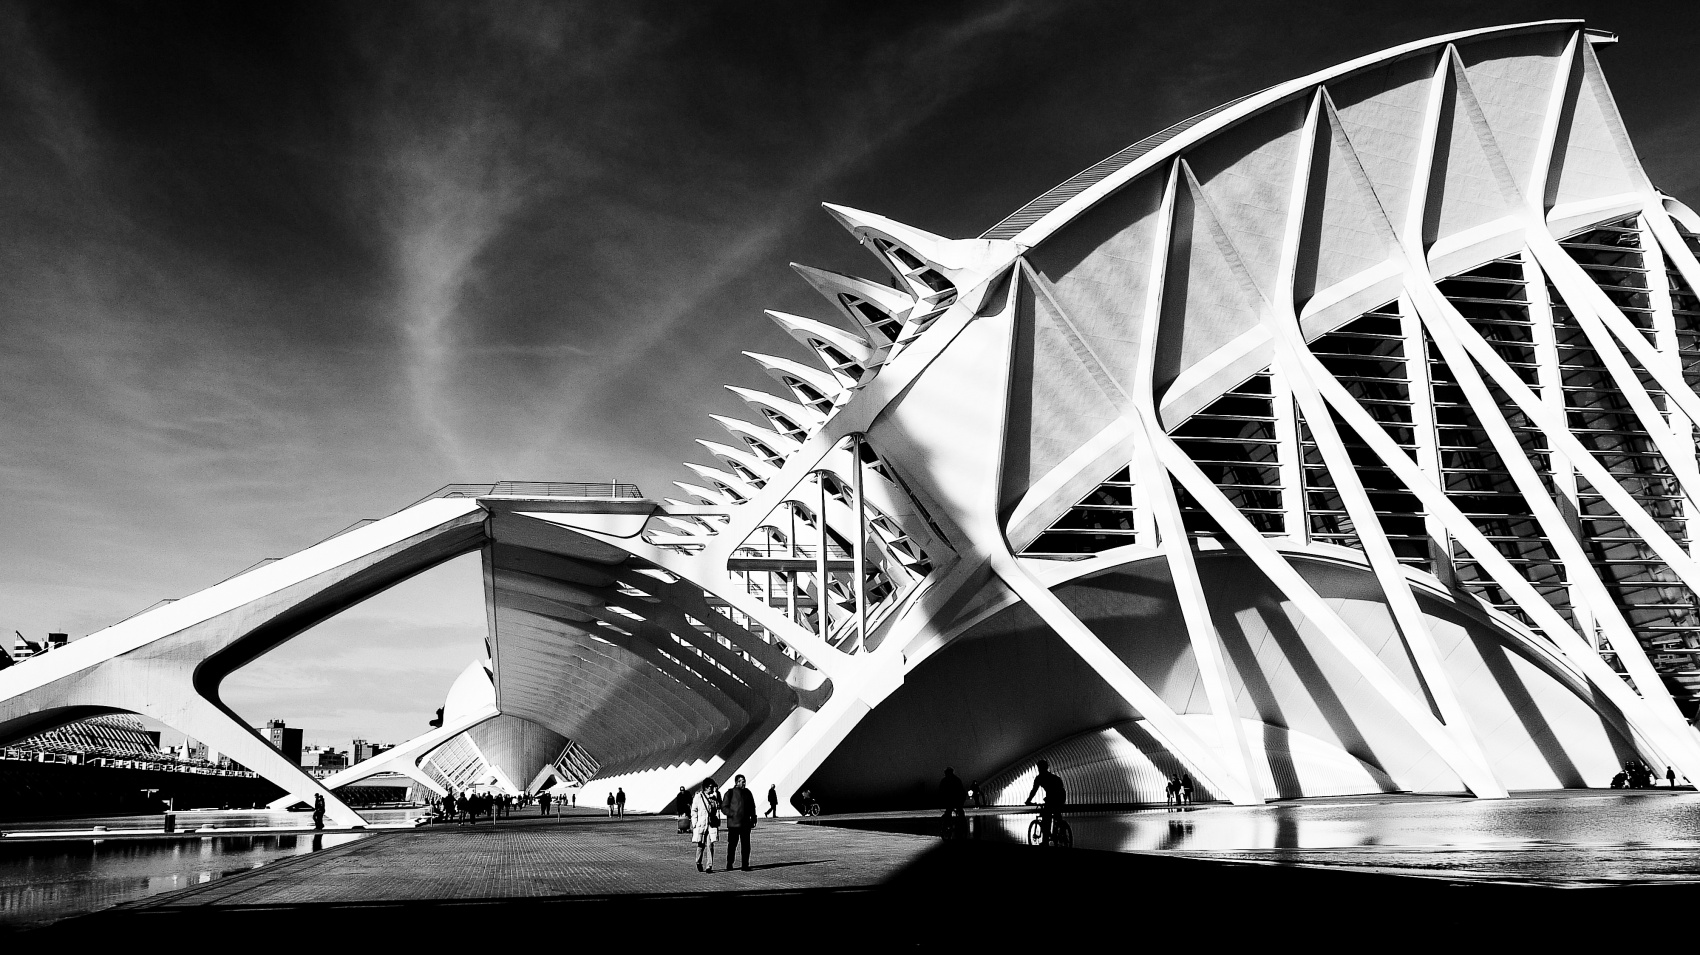 Caught In Time - Valencia, Spain